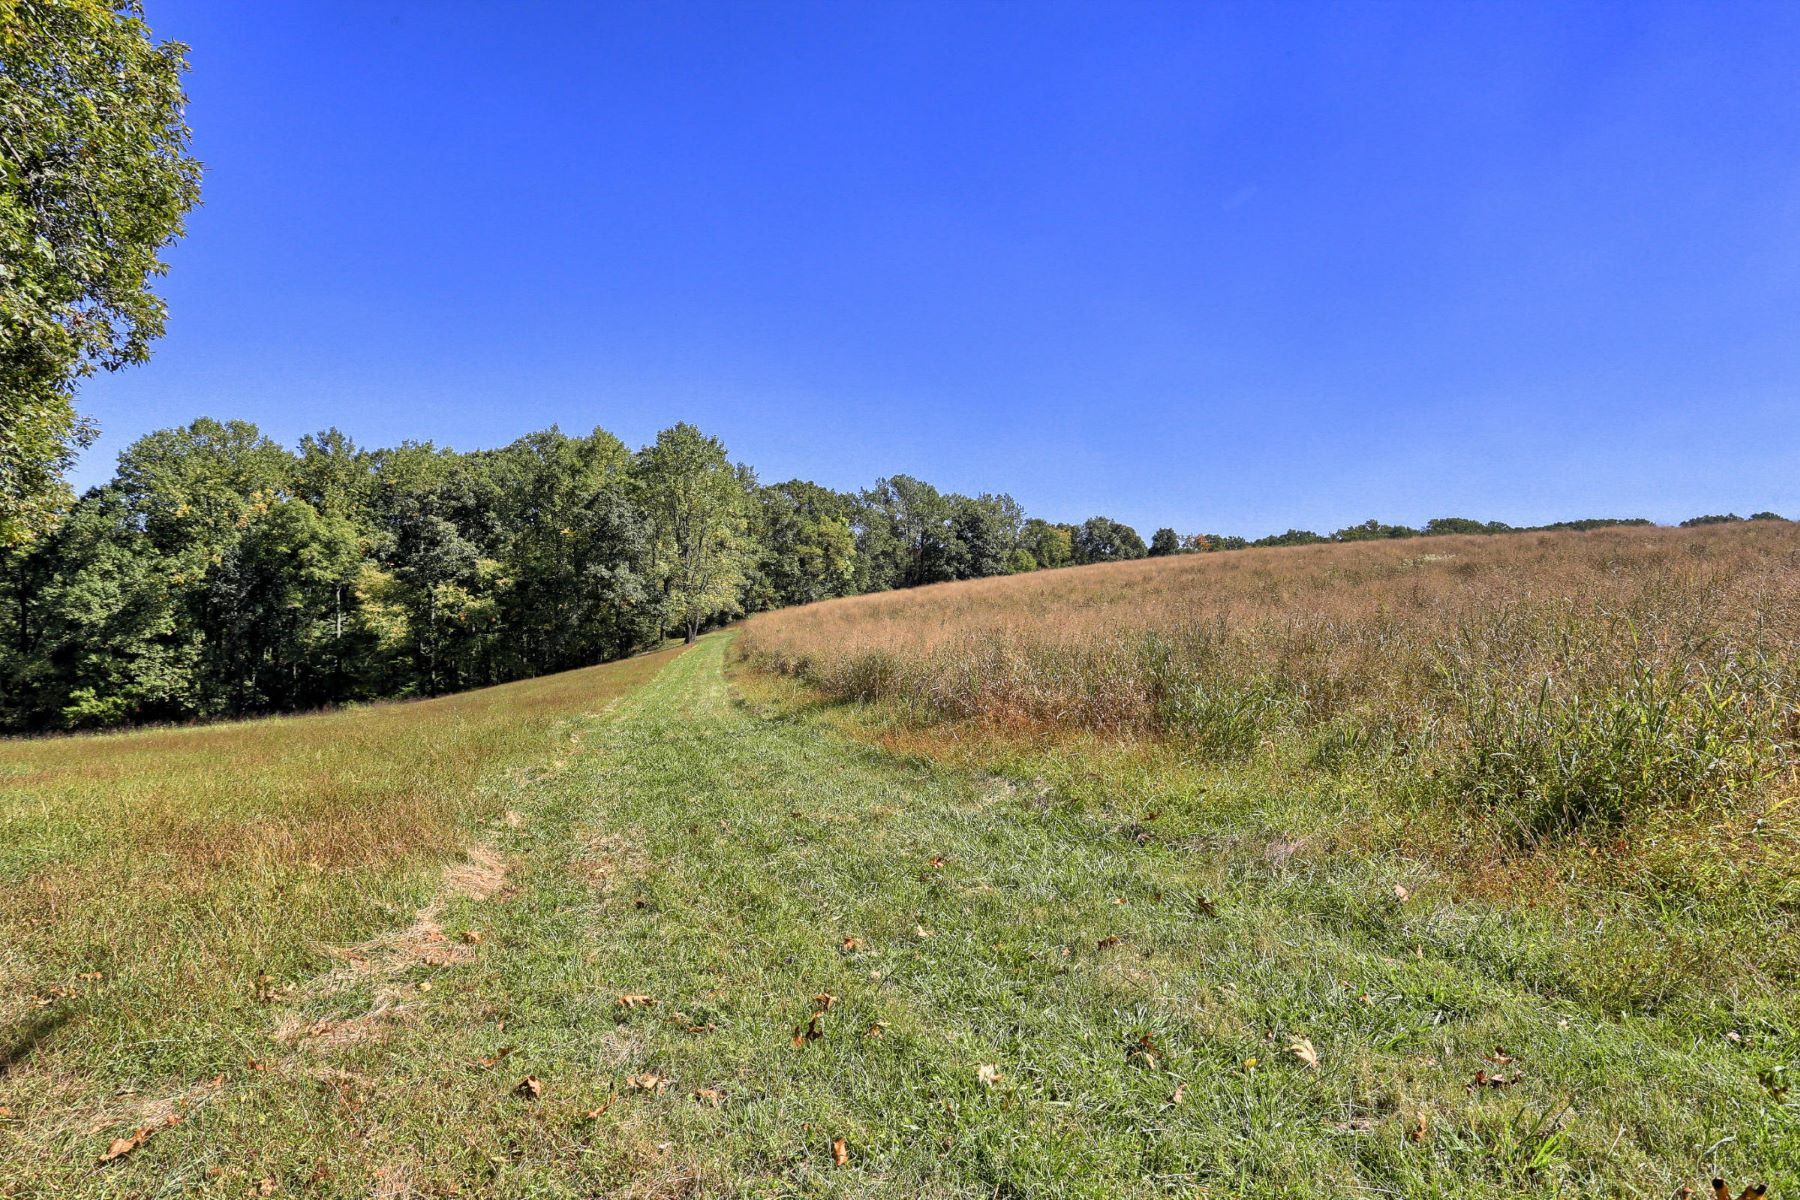 Additional photo for property listing at Hilldale Estates 8 Joann Lane lot 4 Pequea, Pennsylvania 17565 Estados Unidos